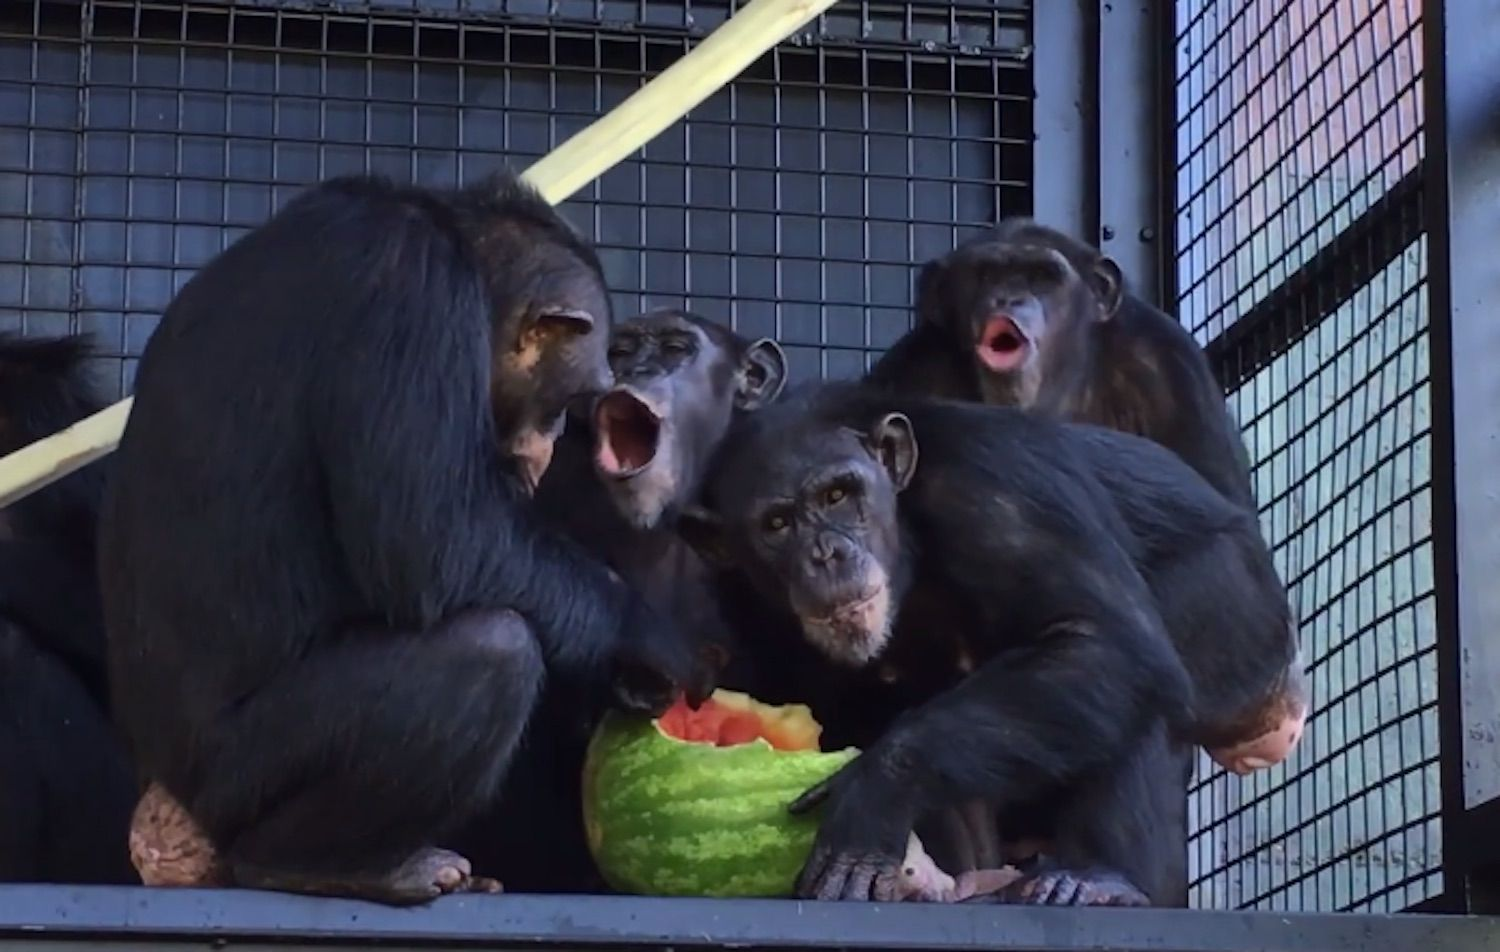 rescued lab chimps taste watermelon for the first time